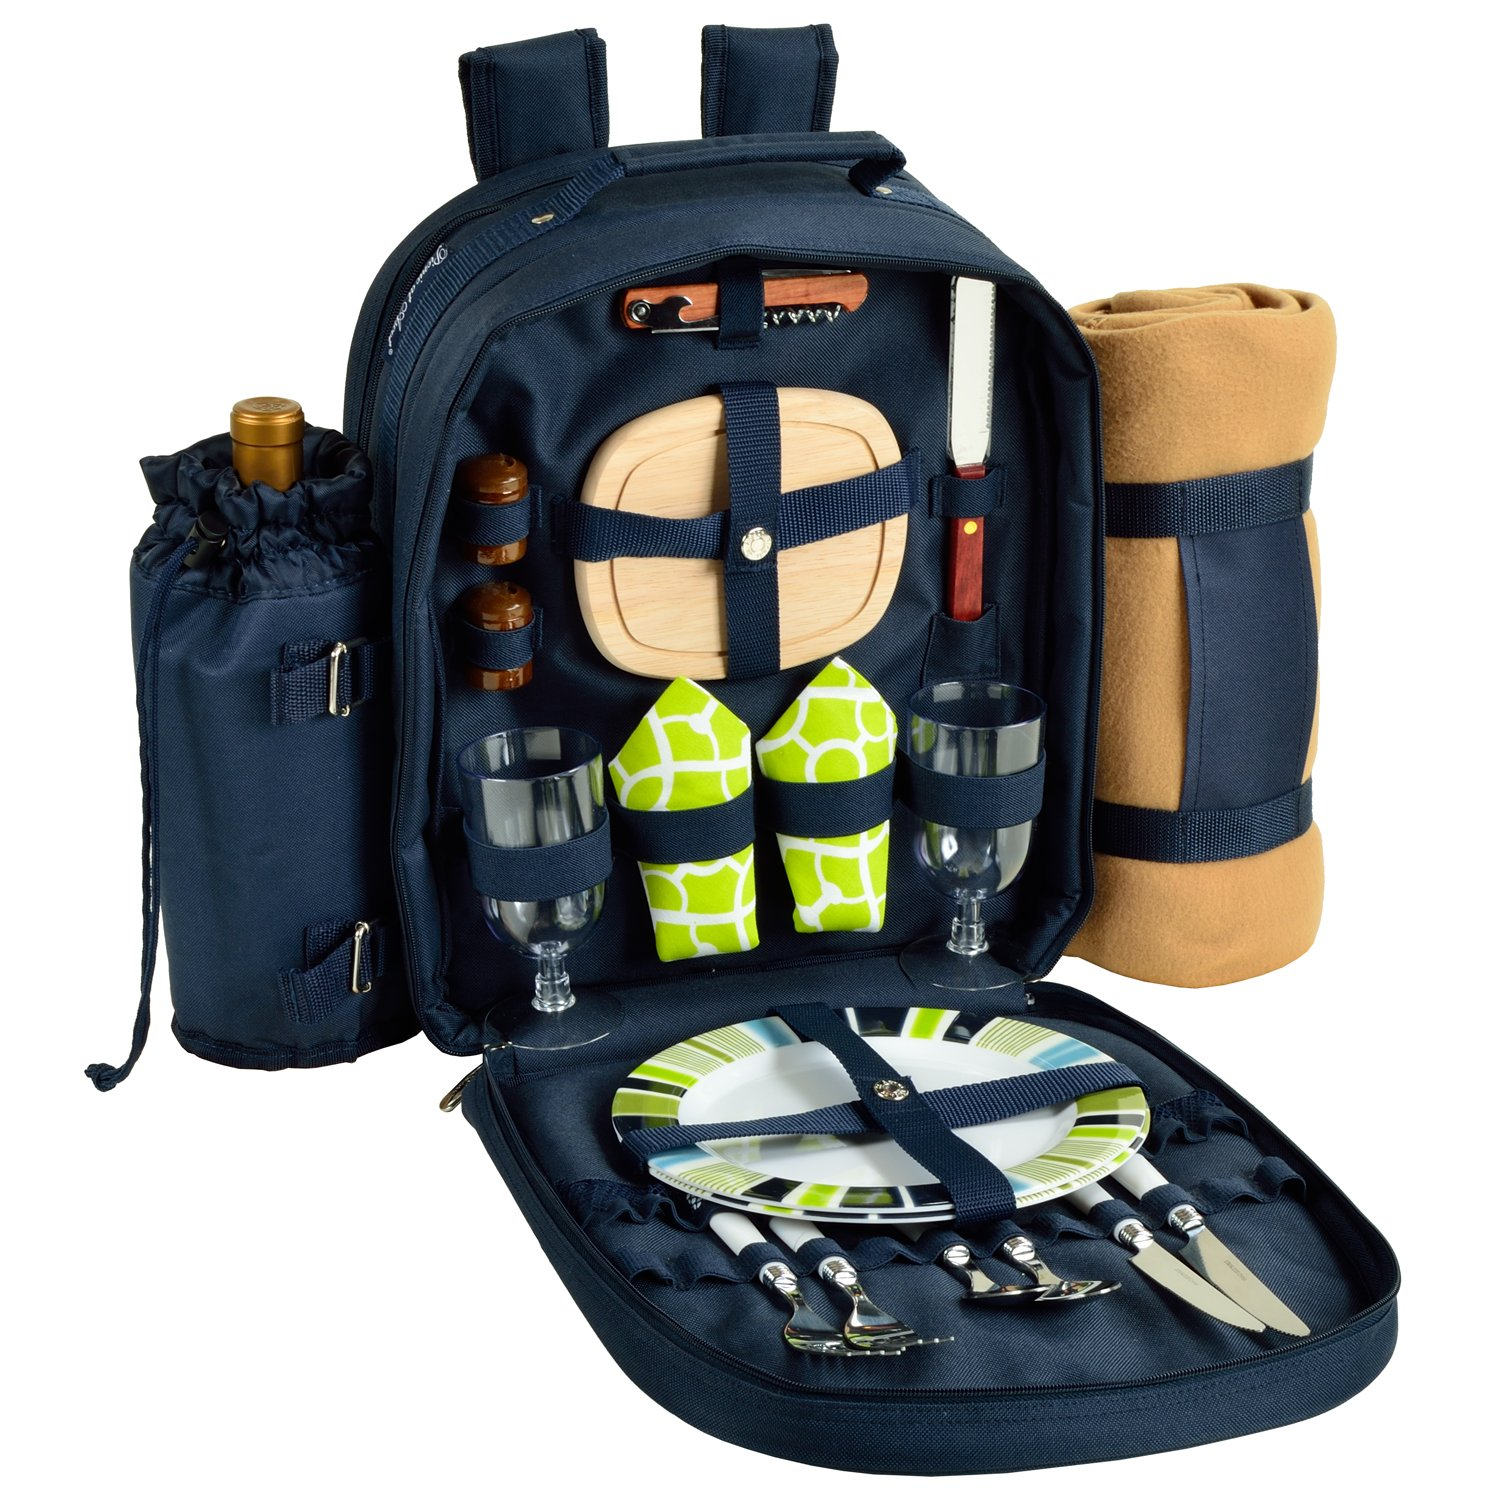 Picnic at Ascot - Deluxe Equipped 2 Person Picnic Backpack with Cooler, Insulated Wine Holder & Blanket - Trellis Green